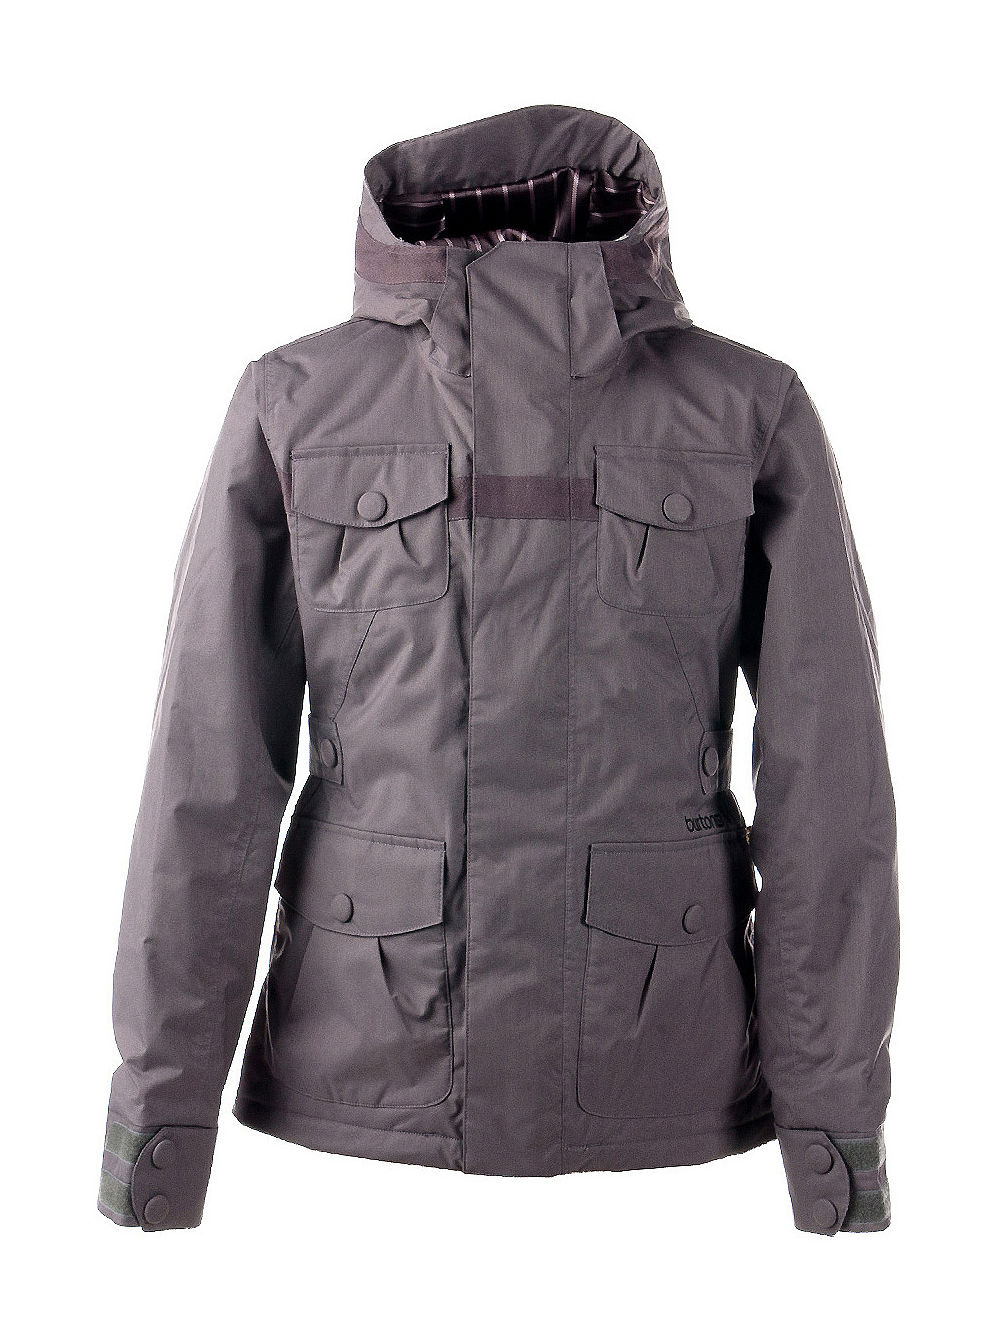 Delirium Jacket Women